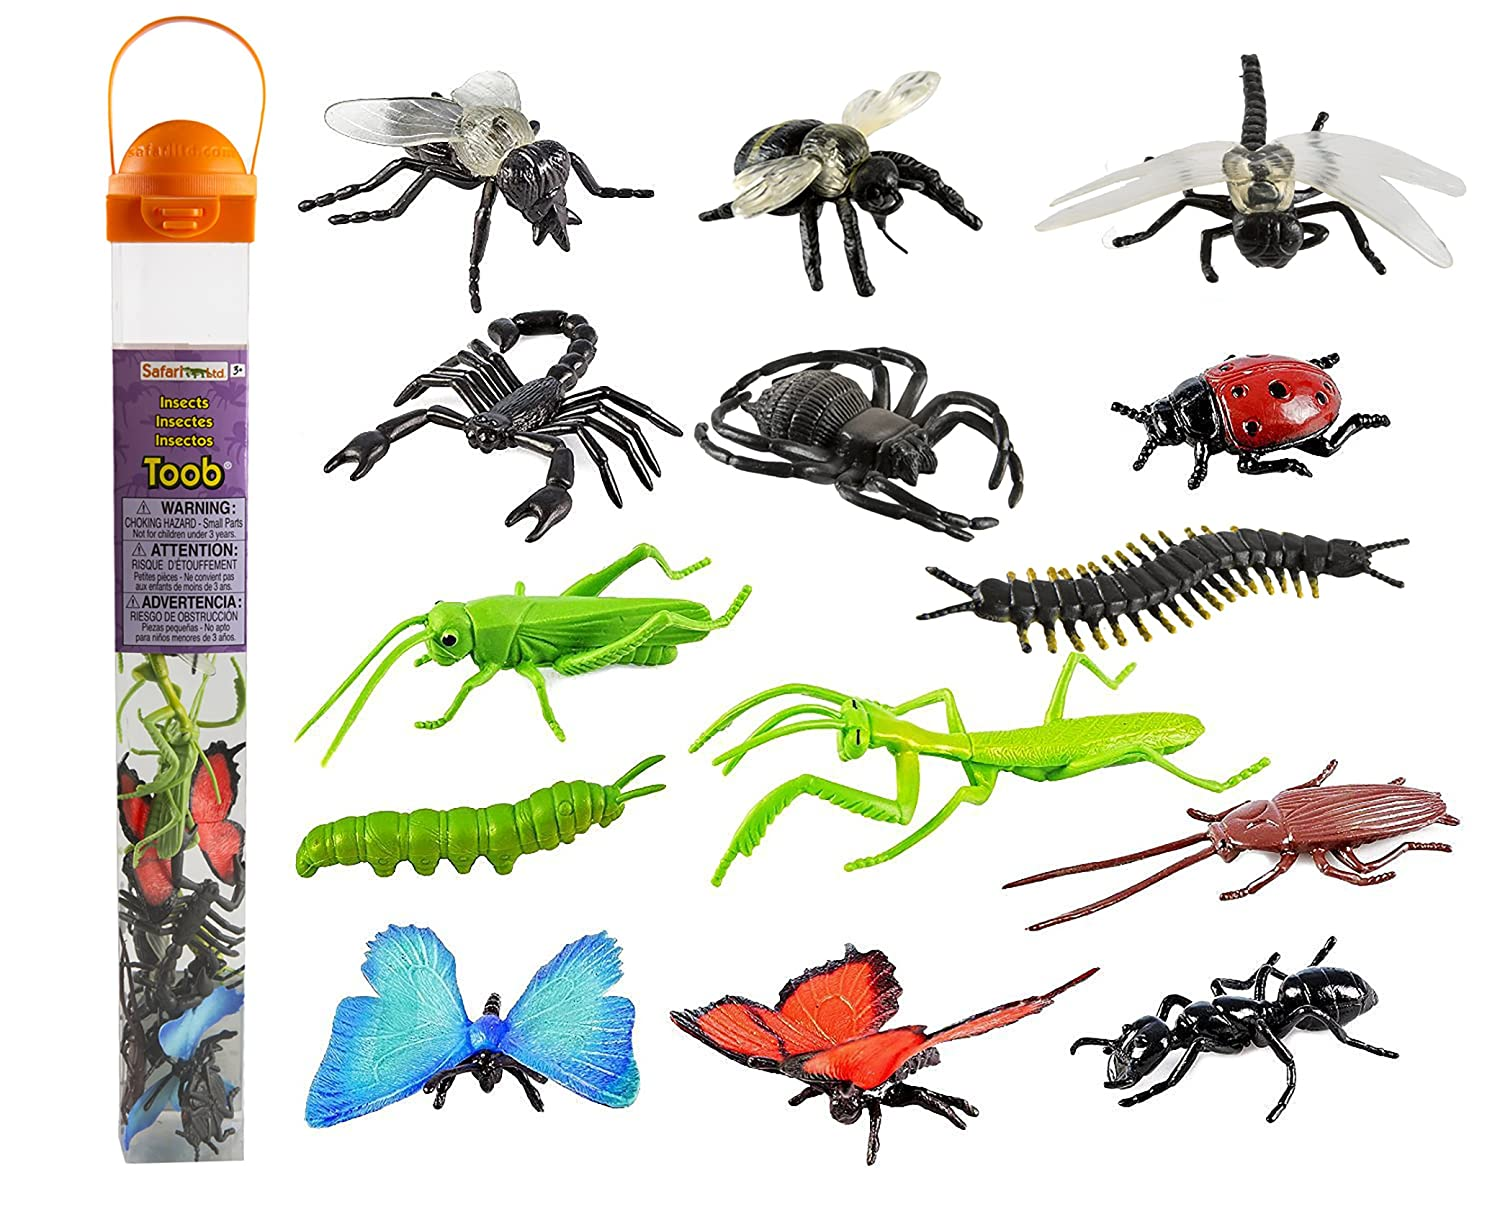 Safari Ltd Insects TOOB – Comes With 14 Toy Figurines – Including  Caterpillar, Dragonfly, Centipede, Grasshopper, Ladybug, Spider,  Butterflies, Bee,